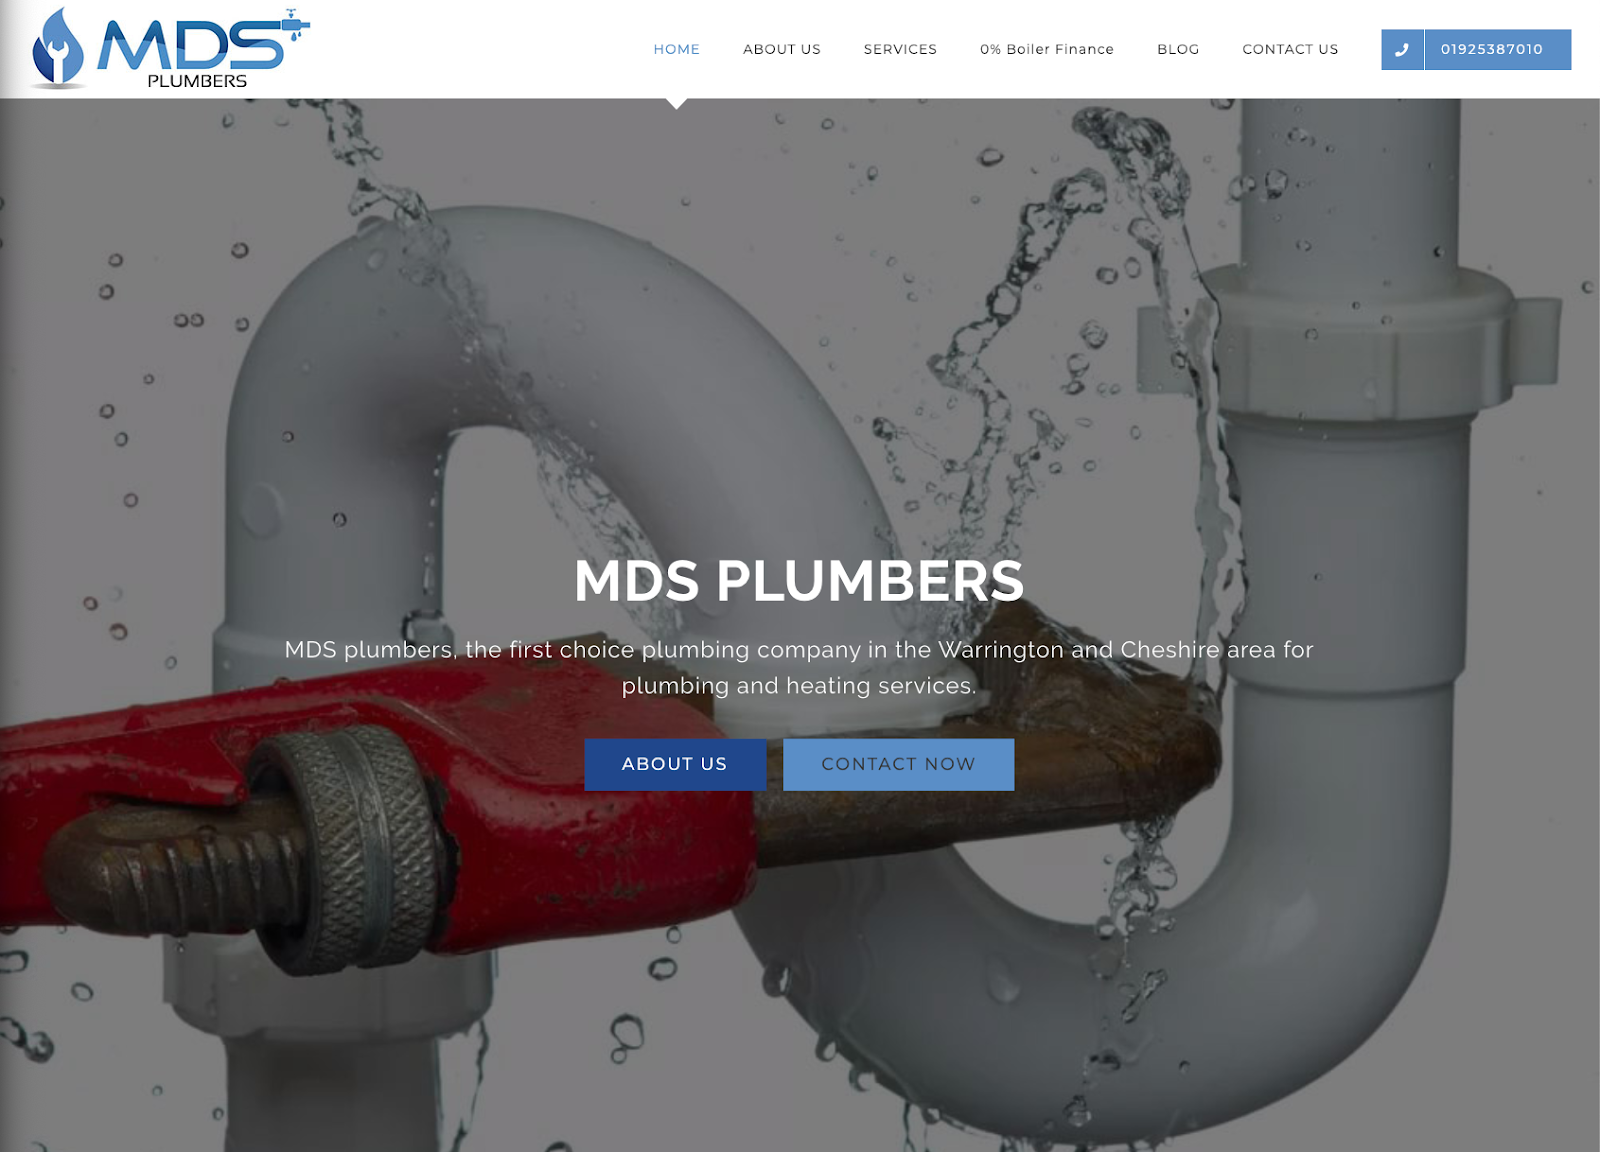 Landing page of a plumbers' website